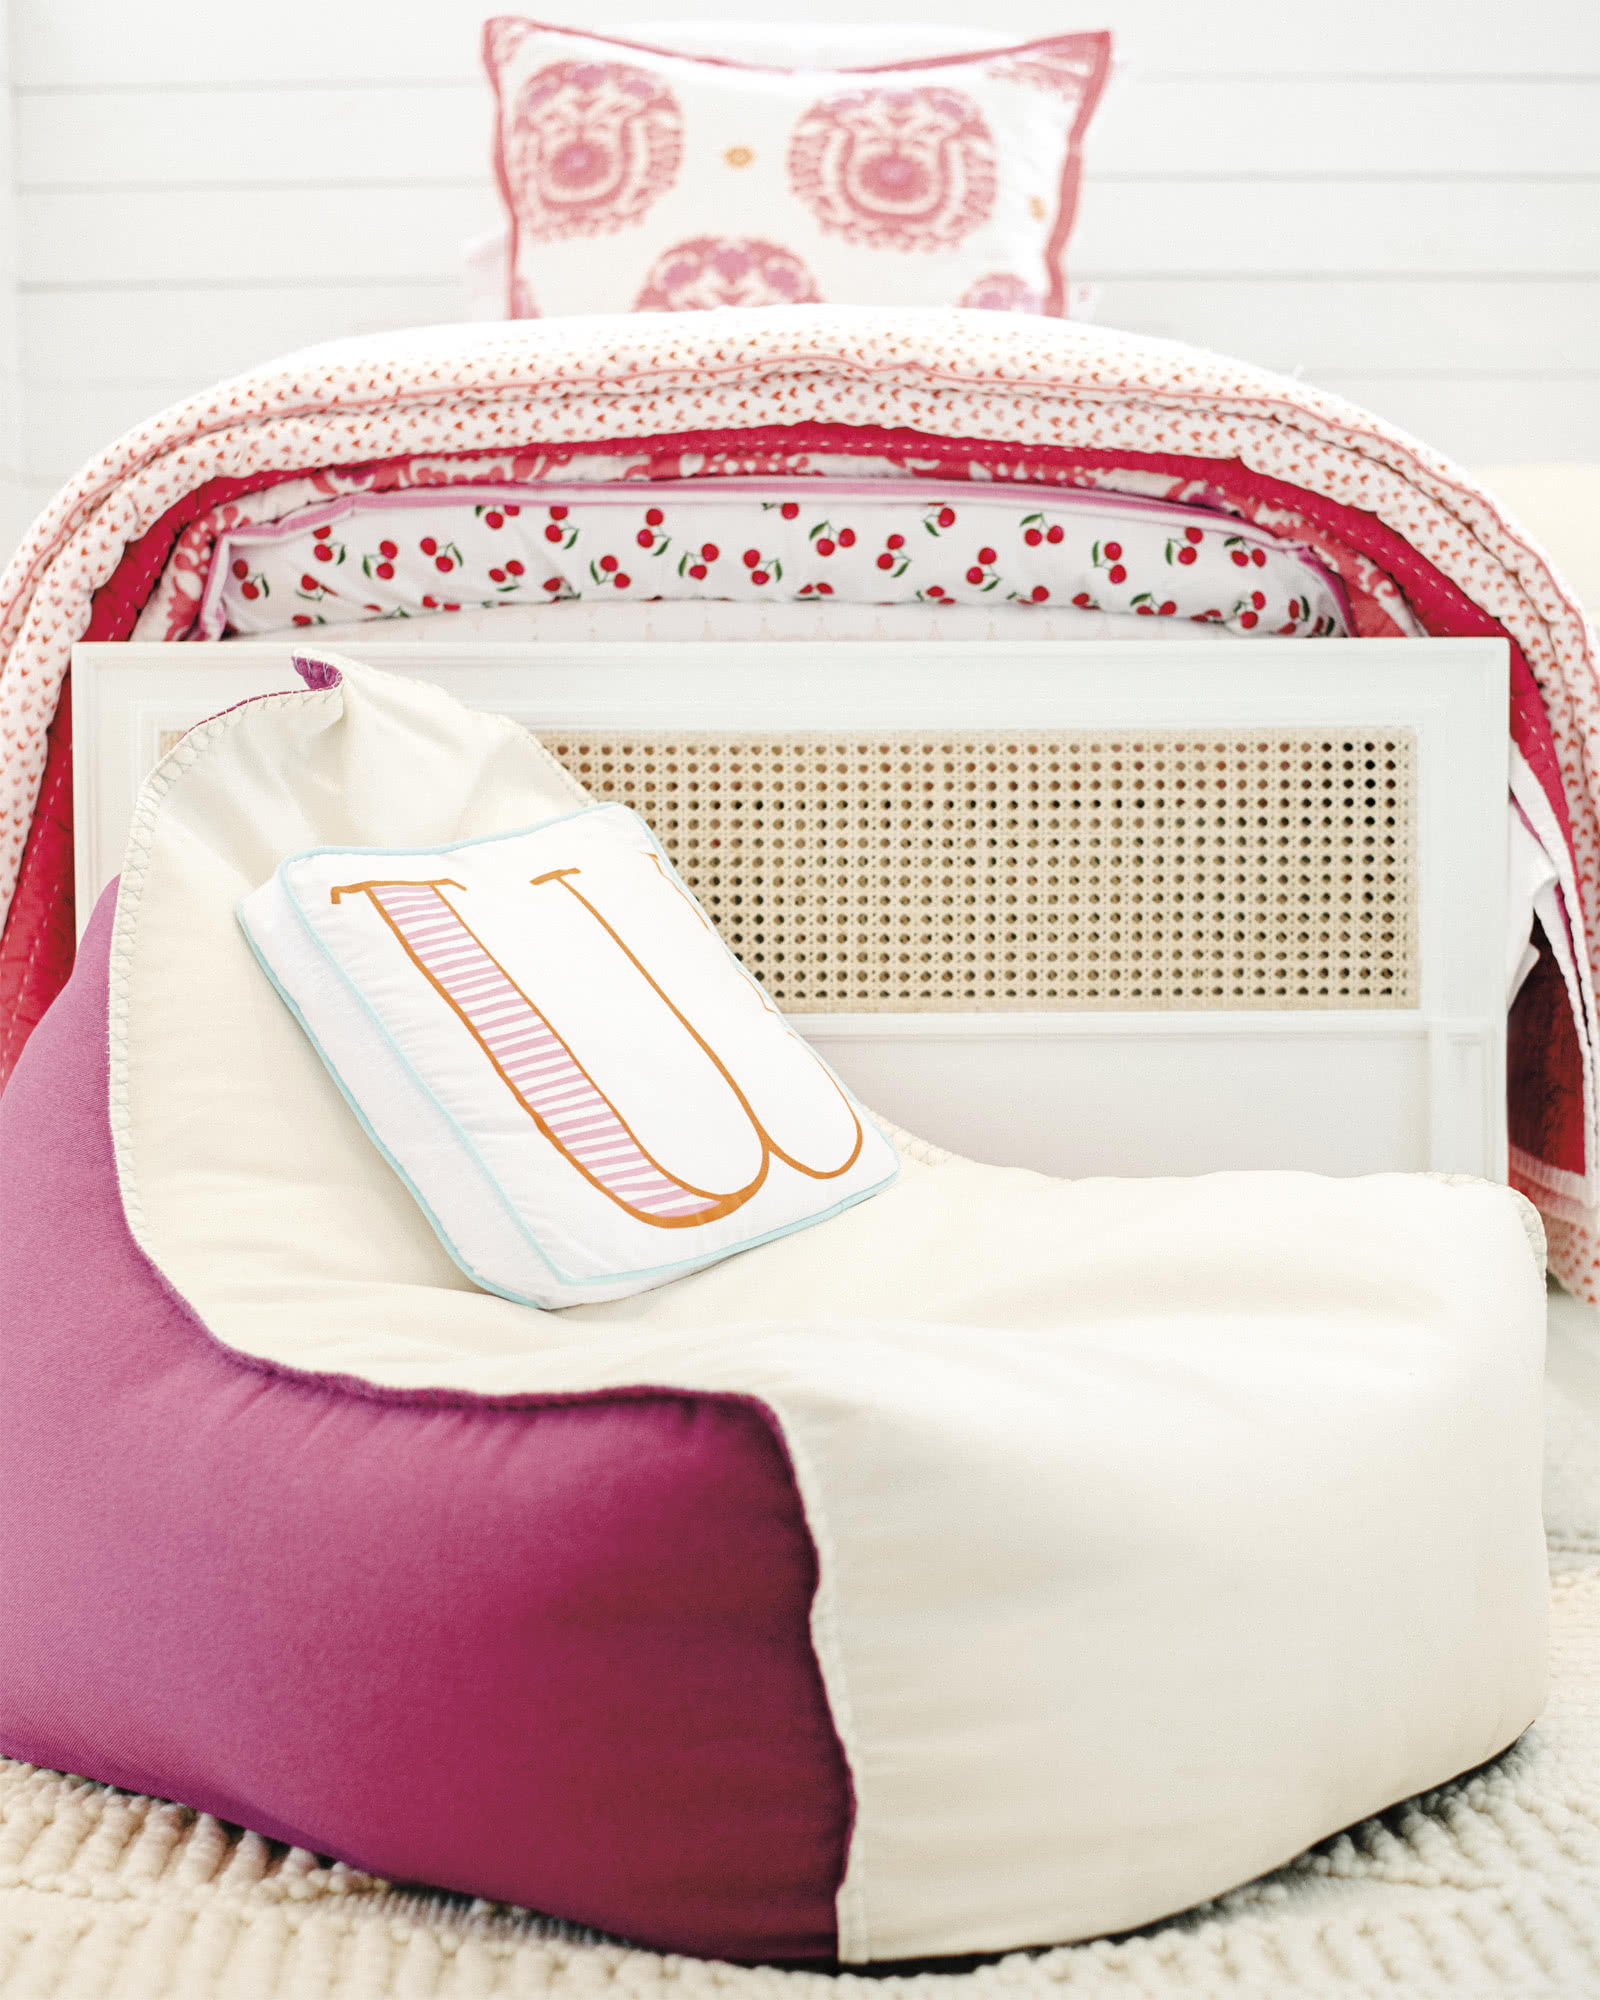 Schoolhouse Letter Pillows